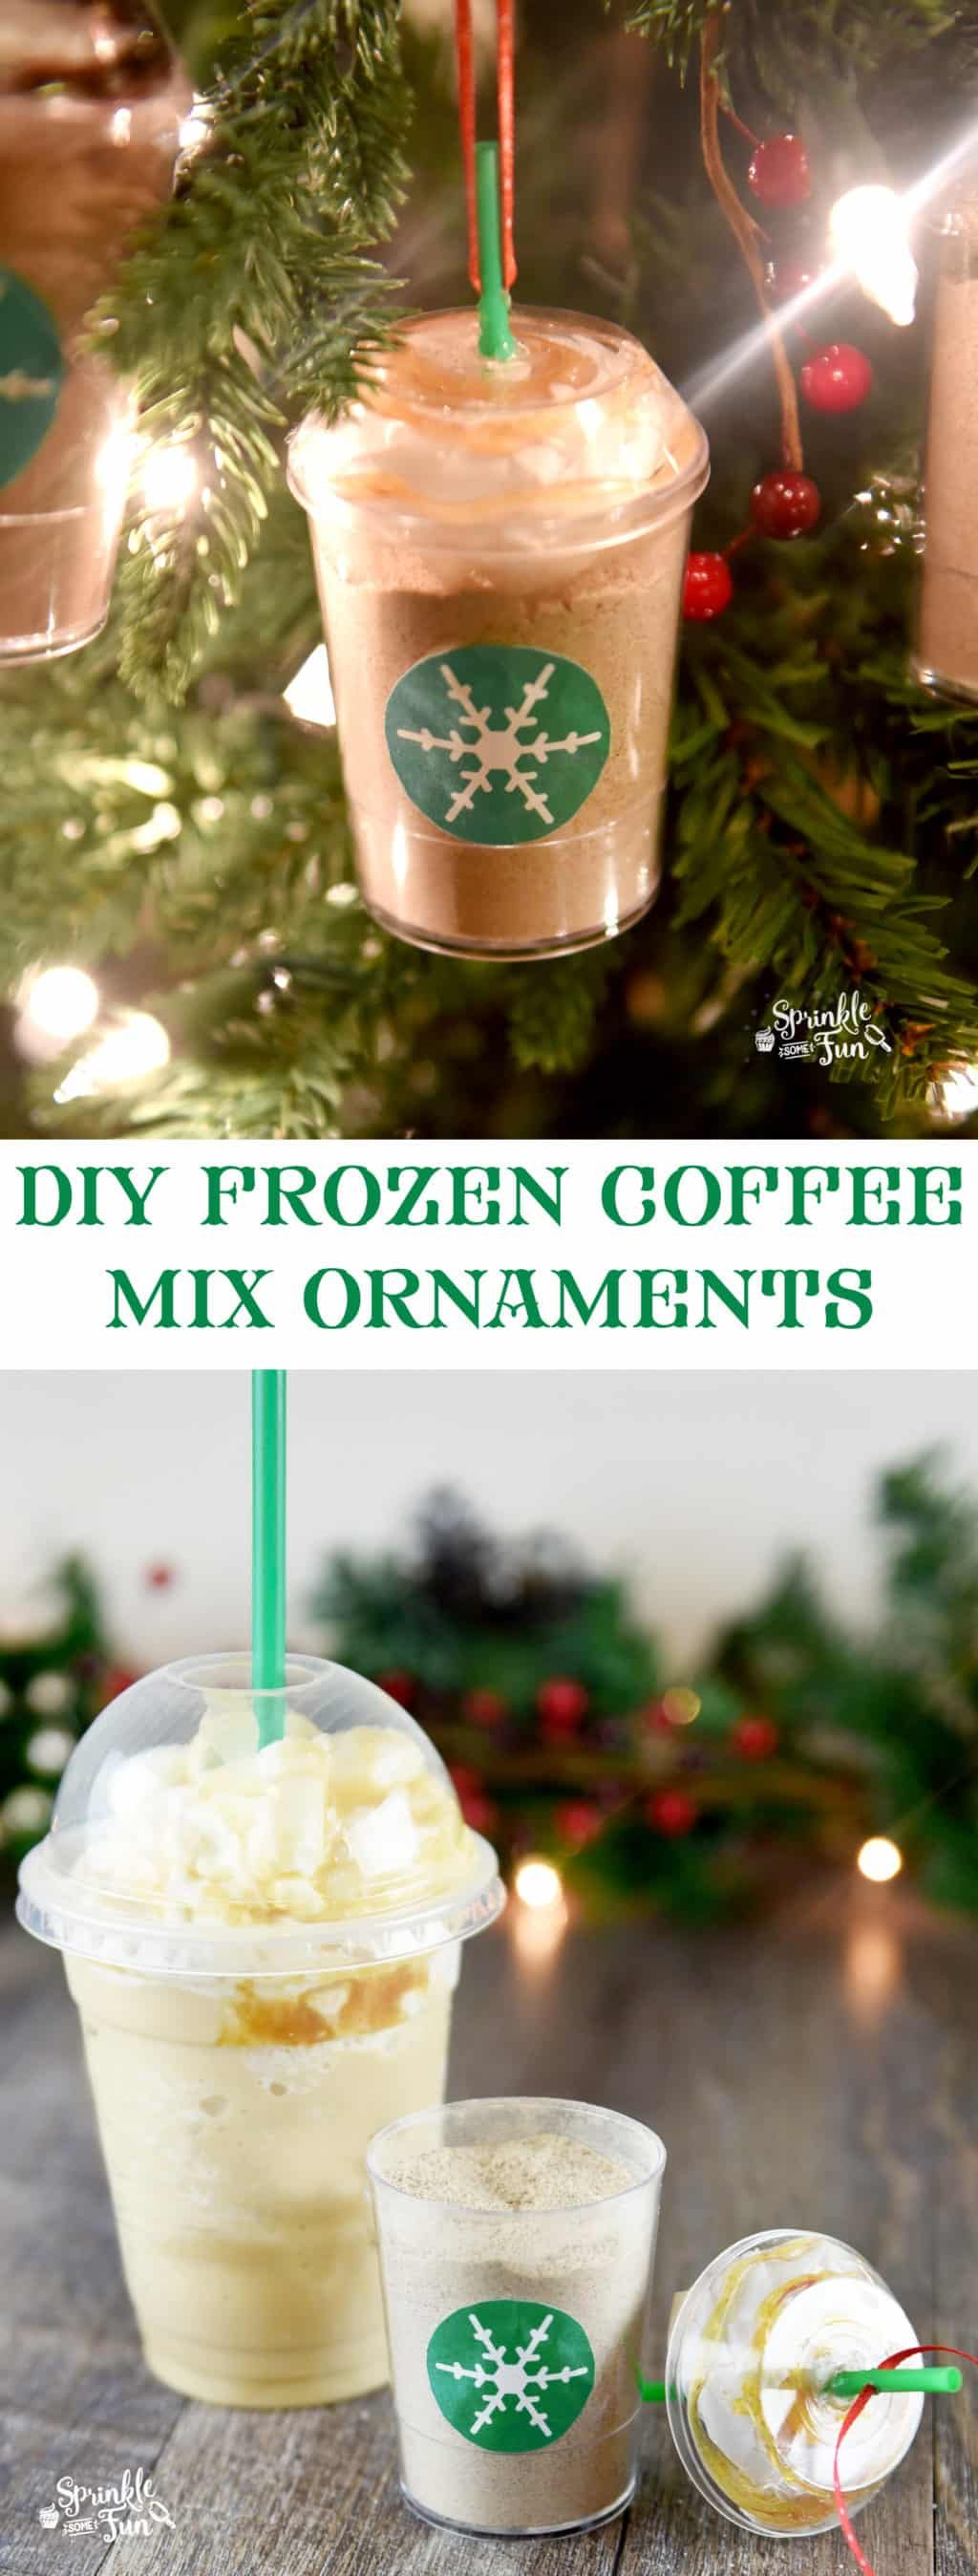 DIY Frozen Coffee Mix Ornaments are a cute Christmas gift idea for the coffee lover that is both a Christmas ornament and a yummy treat!